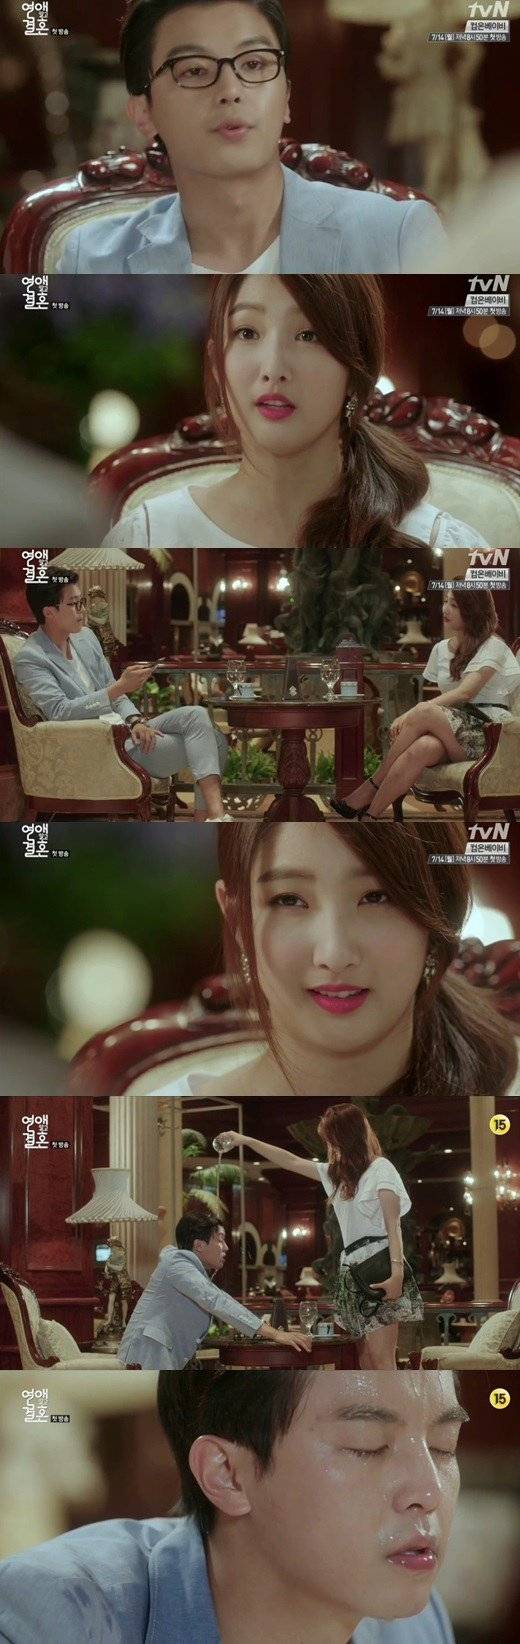 4minute's Jihyun makes a splash for her cameo on the first episode of 'Marriage, Not Dating'